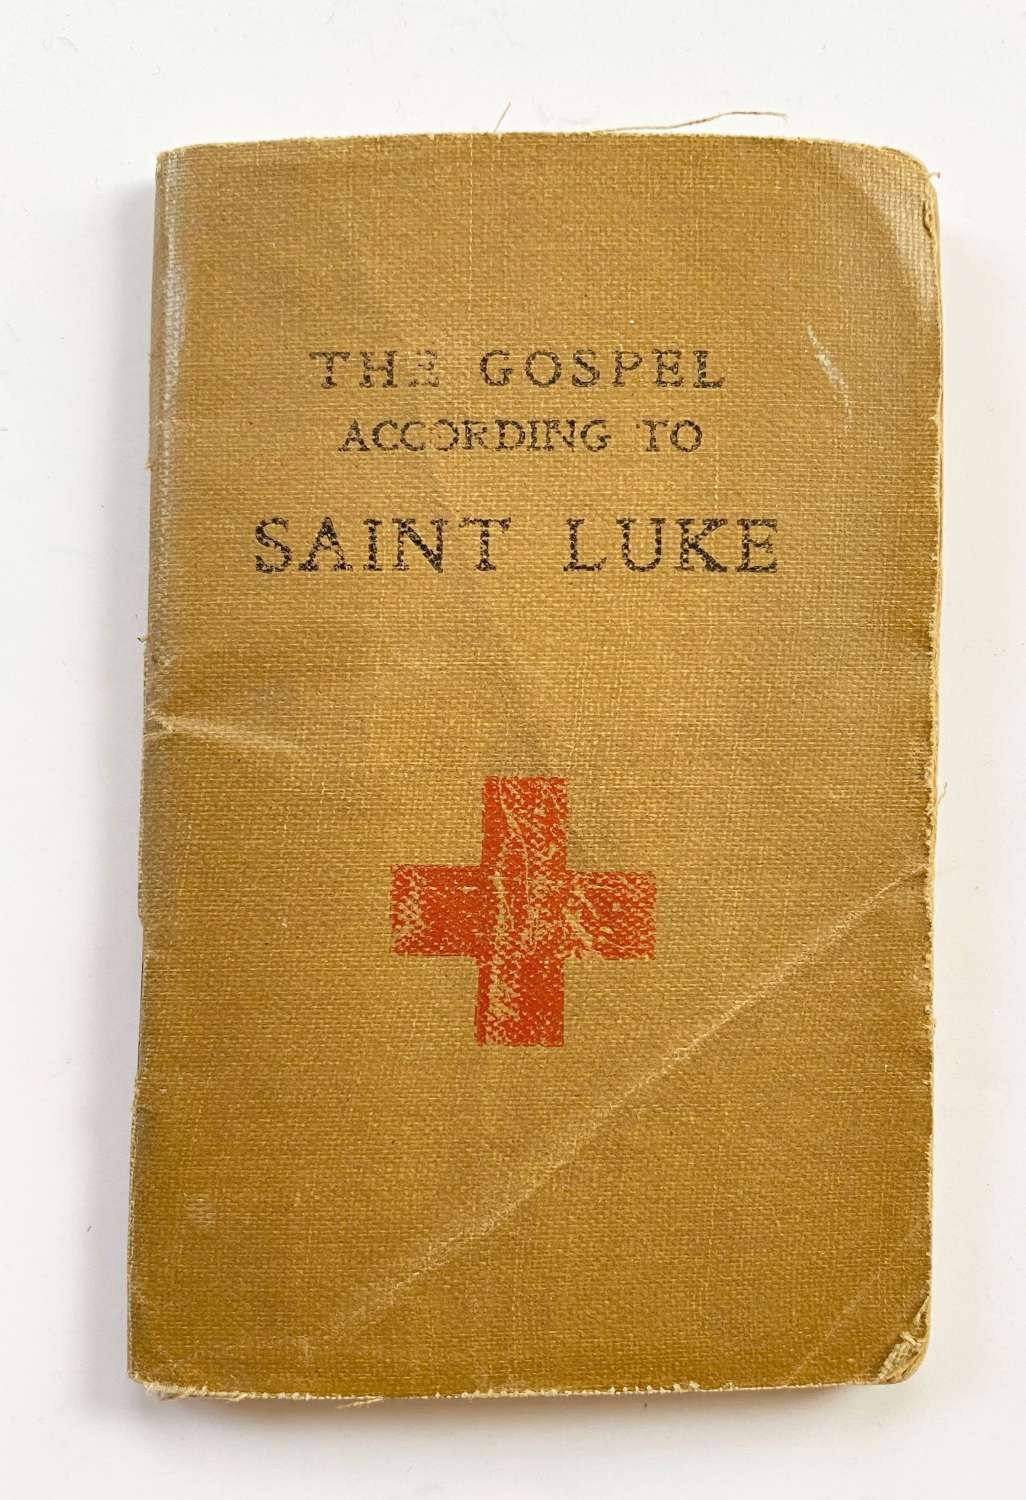 WW1 Soldier's Comfort Gospel of St Luke.